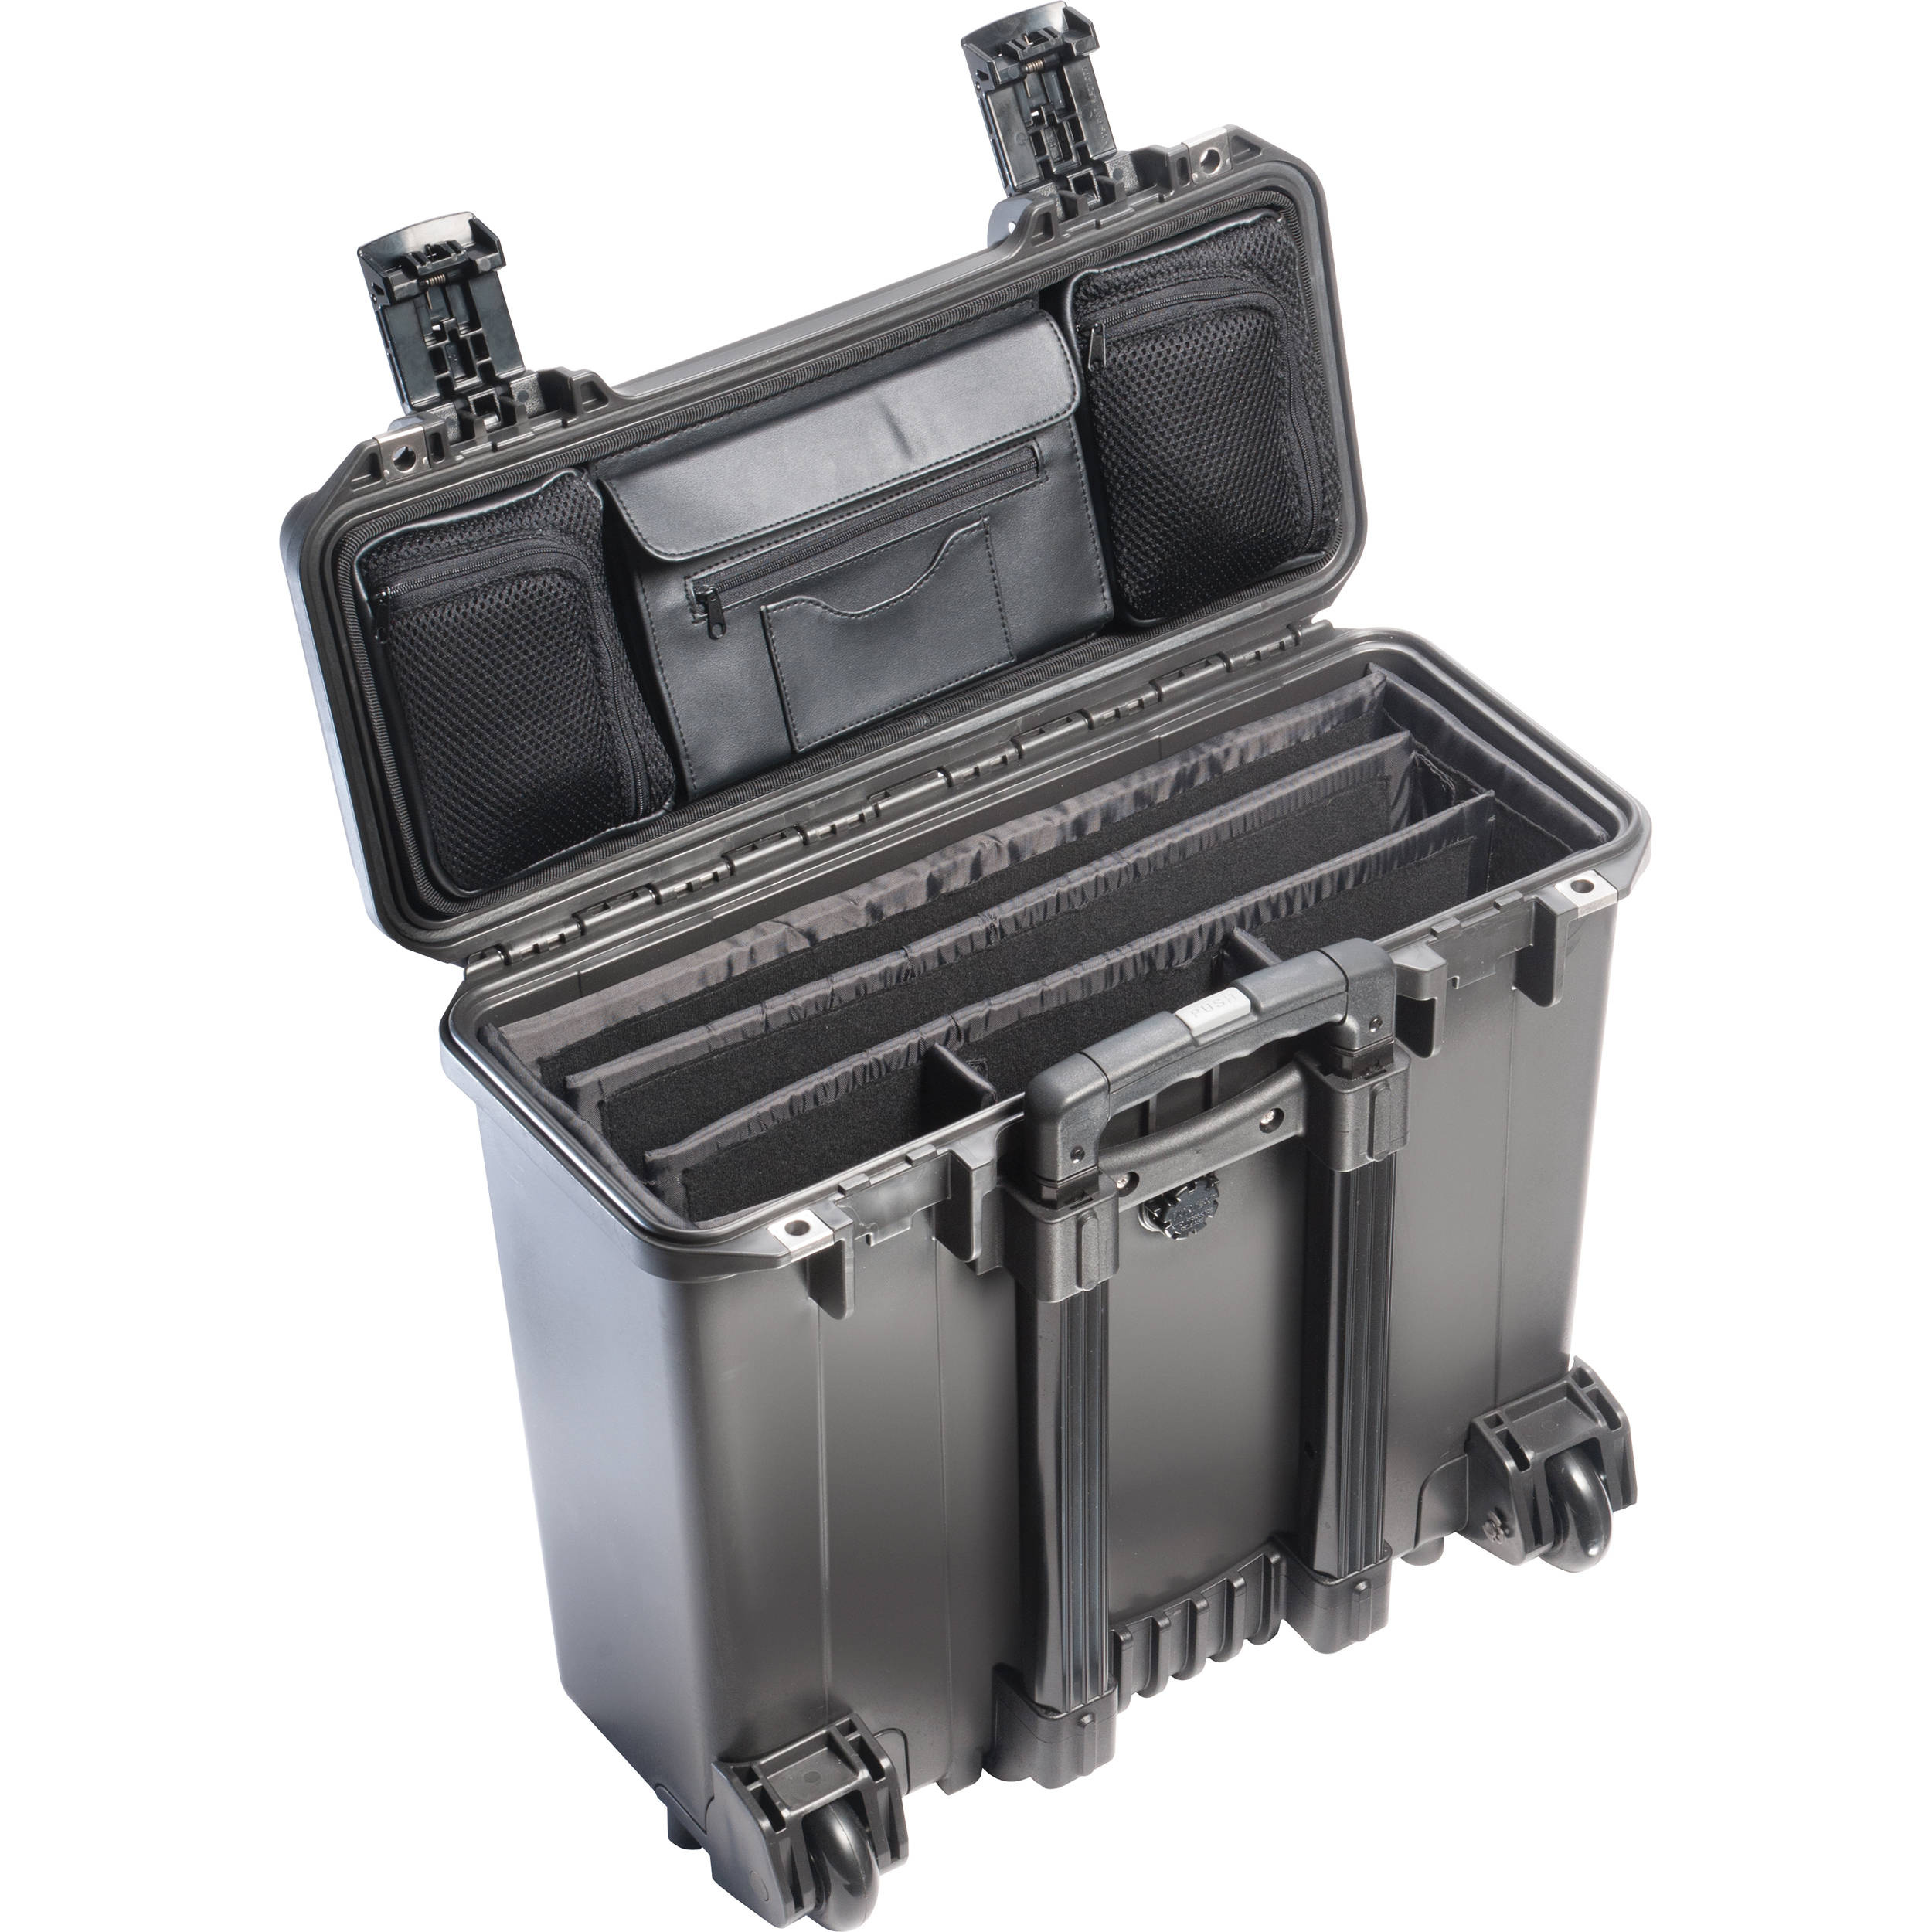 Pelican iM2435 Storm Case Top Loader w/ dividers (Black)